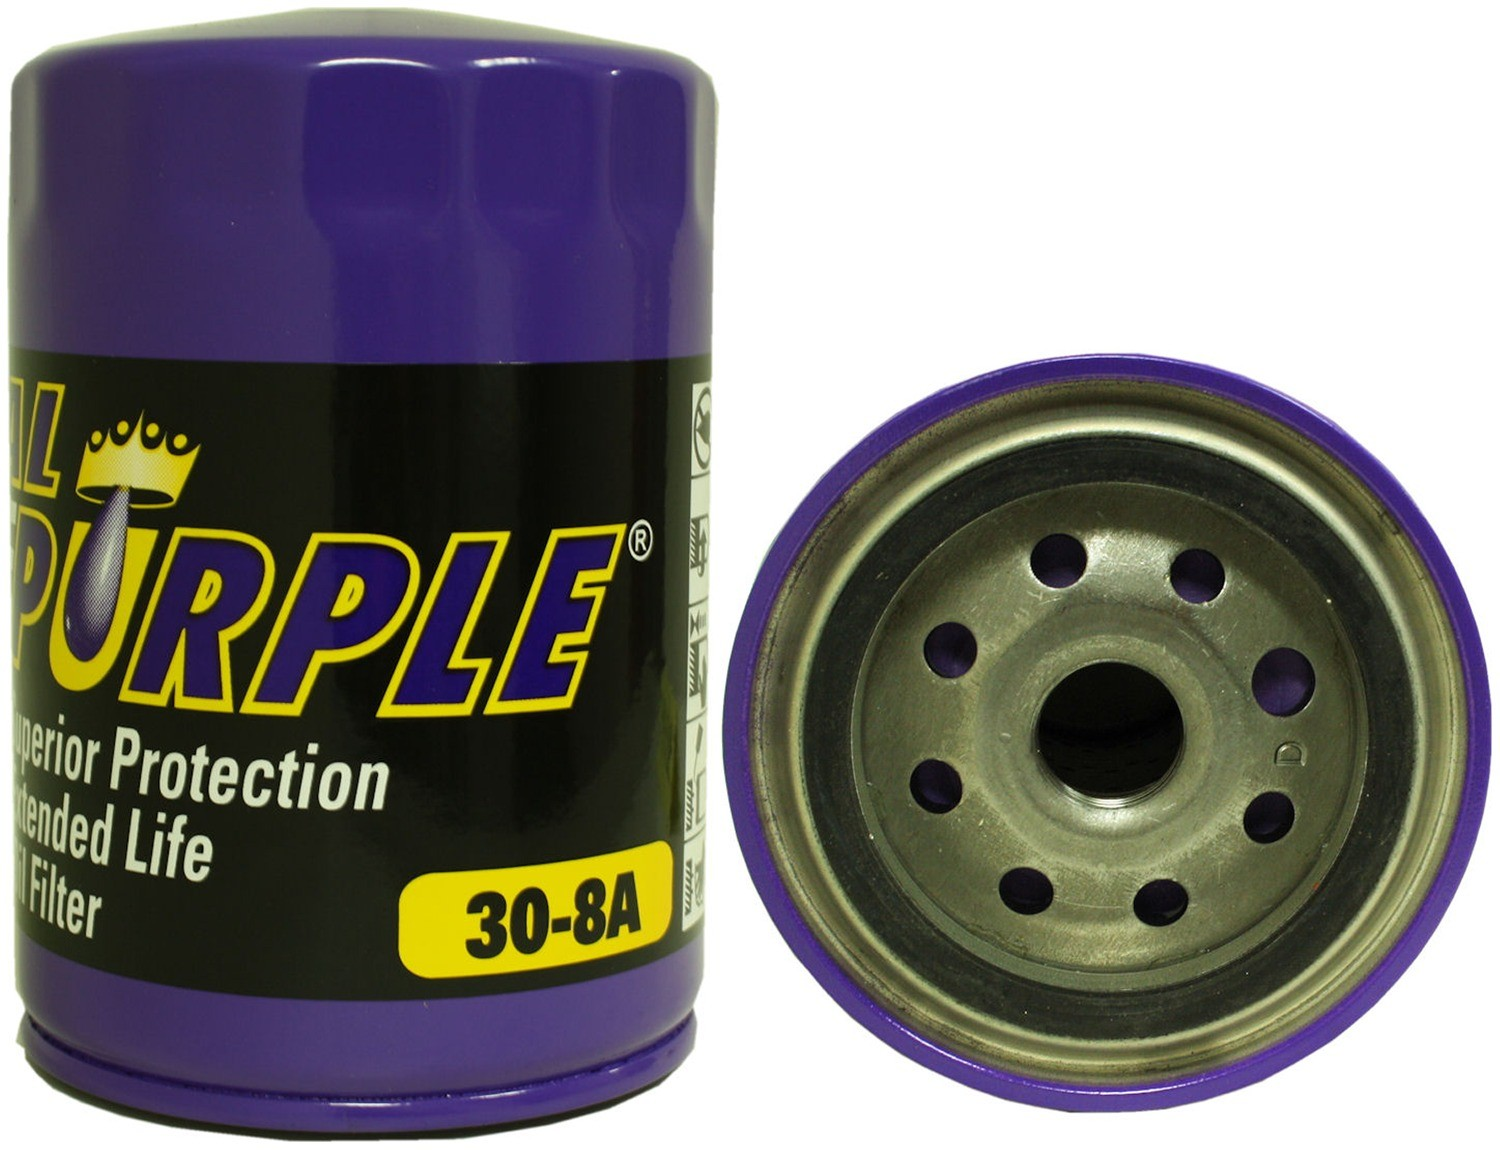 ROYAL PURPLE - Engine Oil Filter - XSJ 30-8A